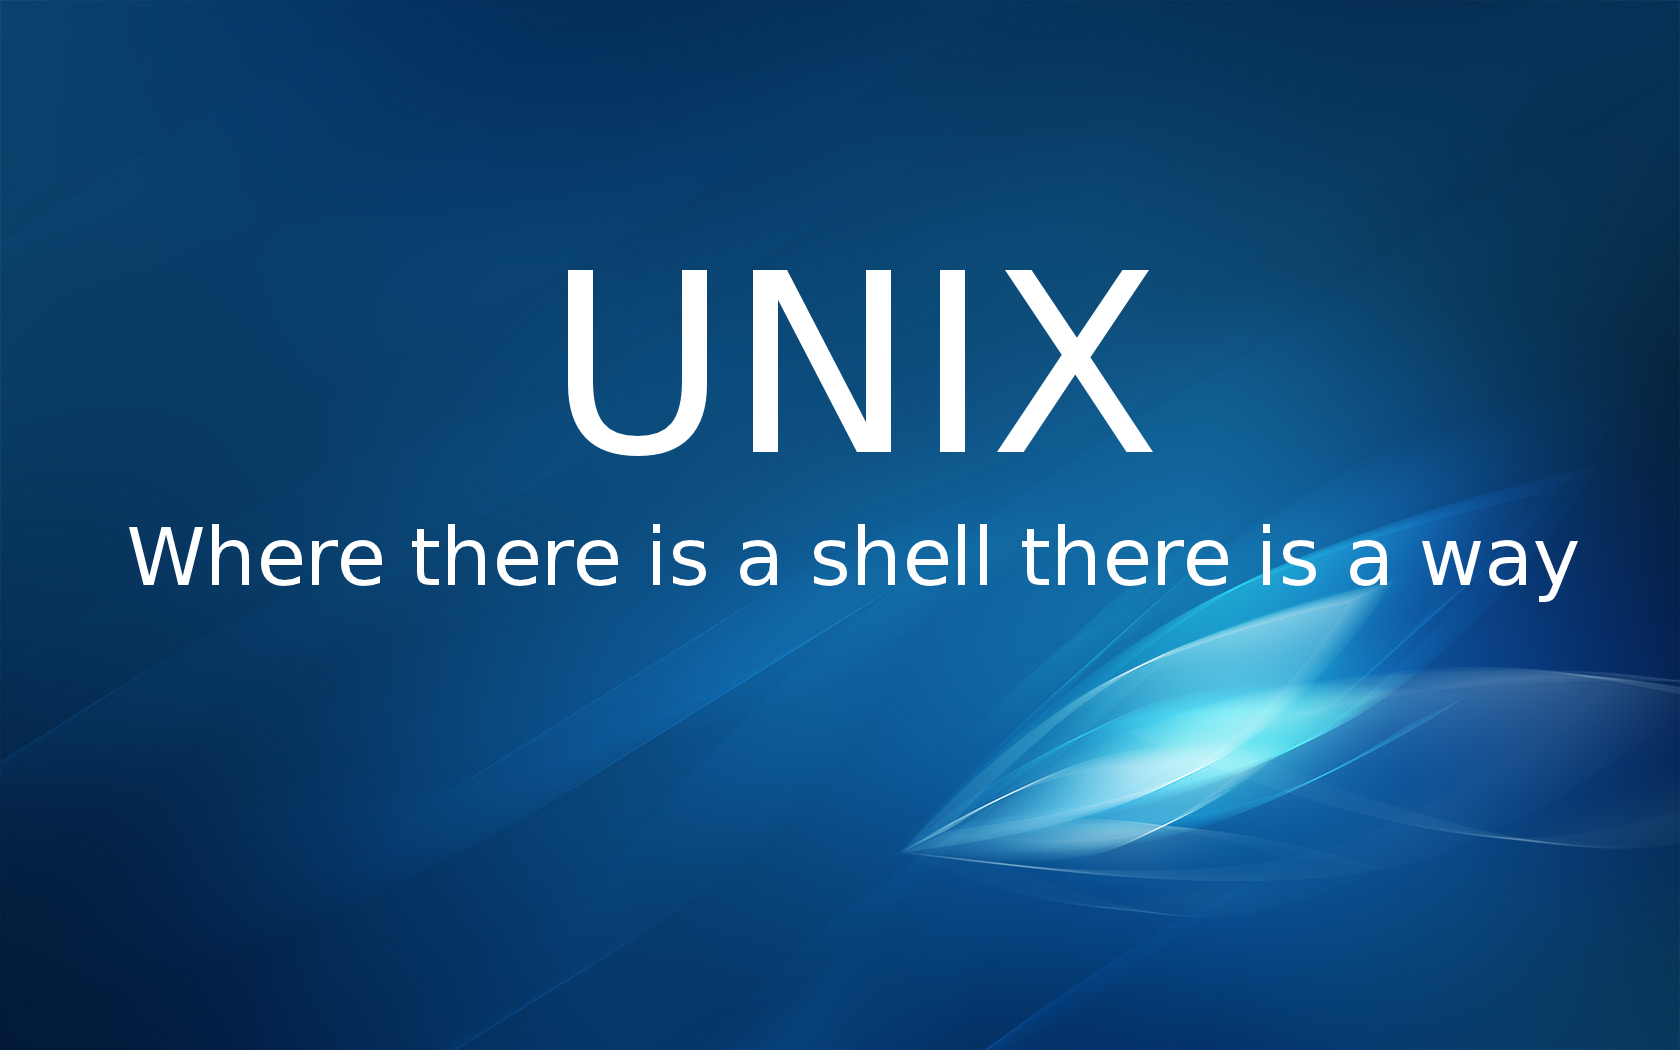 Unix Wallpaper